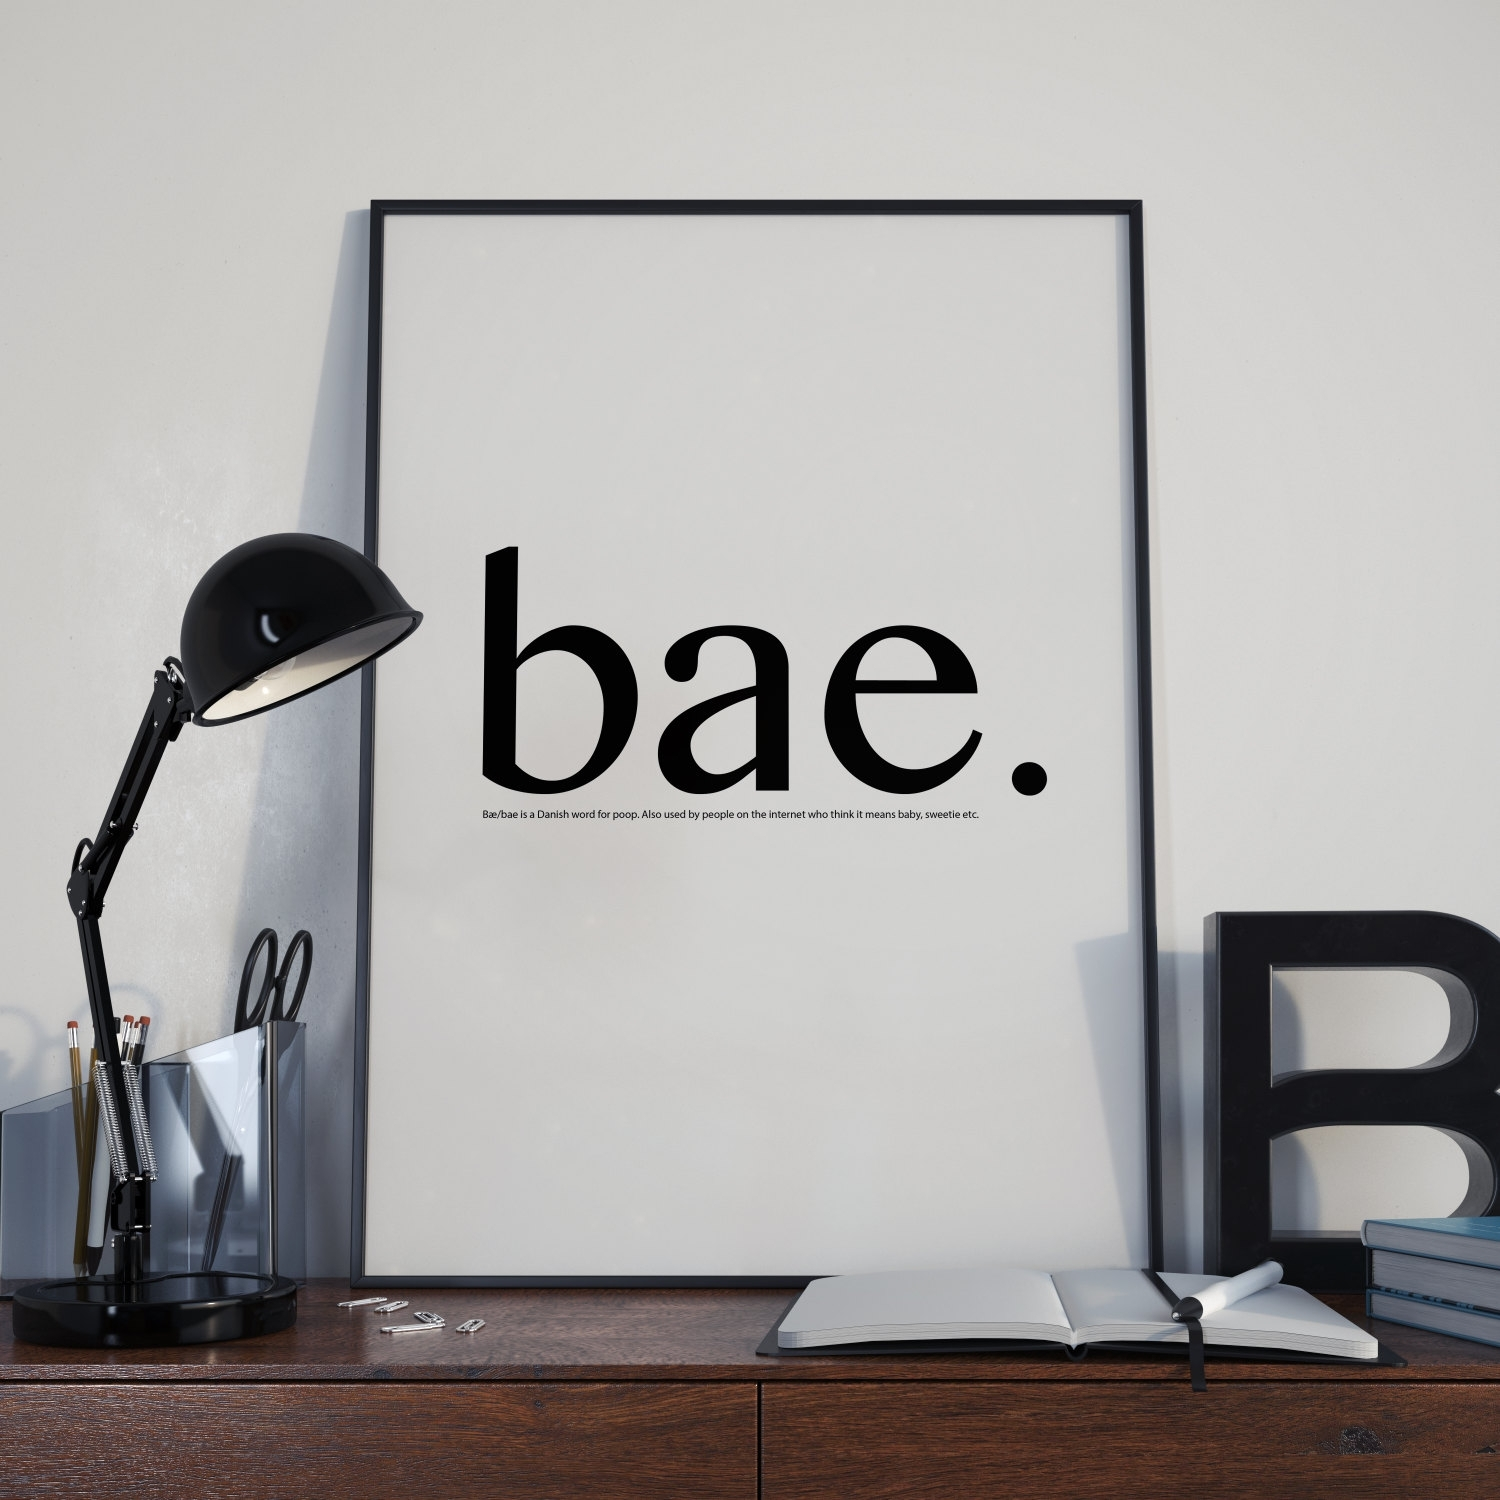 Bae Definition – Dictionary Definition Wall Art – Tumblr Wall Art With Regard To Most Recent Tumblr Wall Art (View 16 of 20)